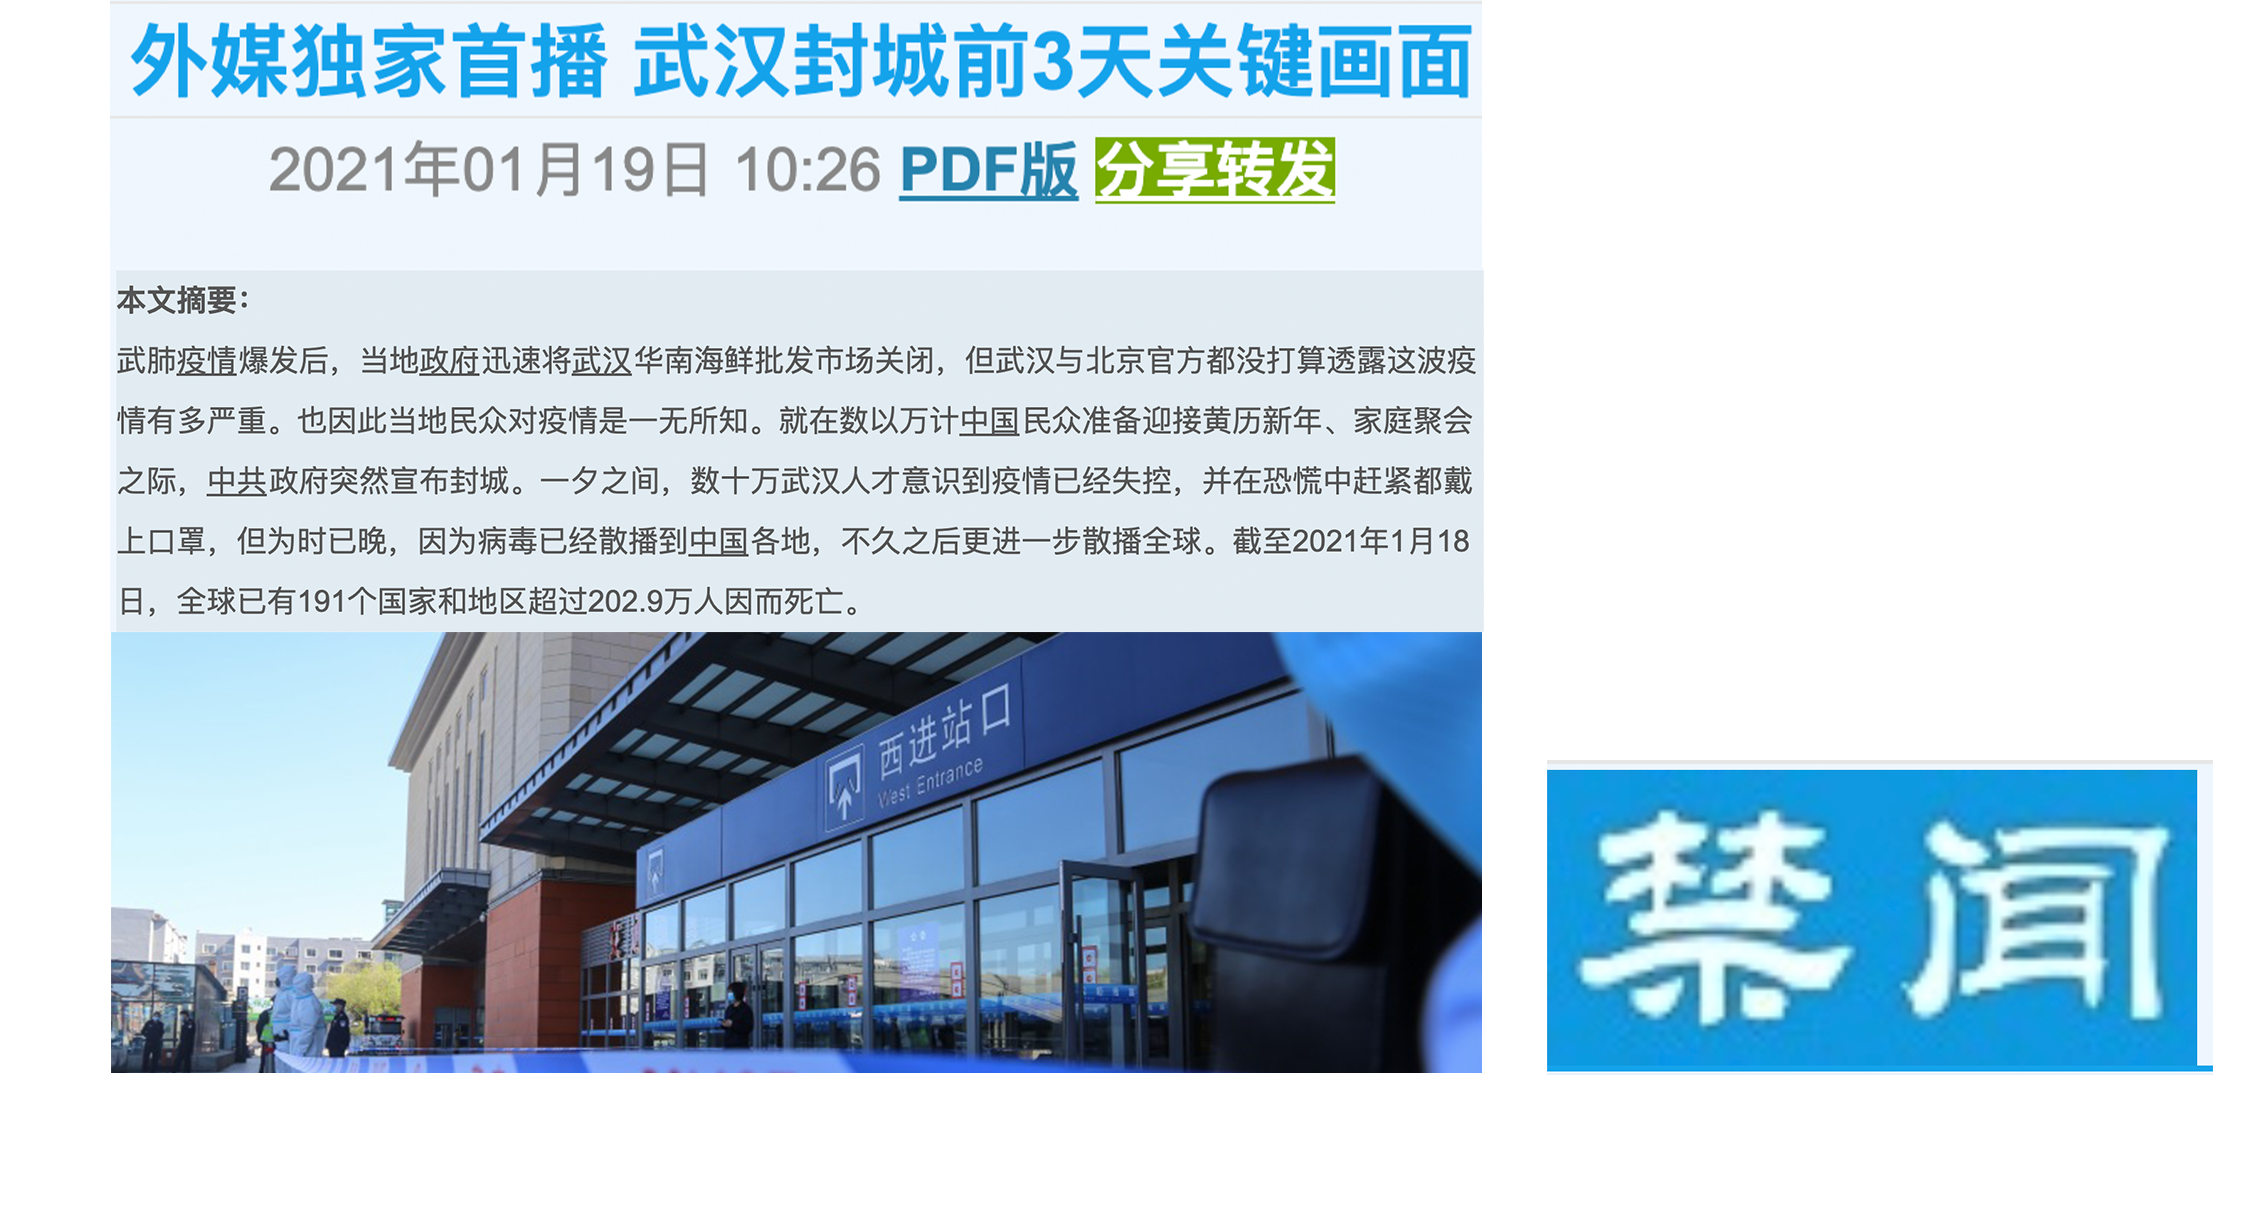 Foreign media exclusively premieres key images 3 days before the lockdown of Wuhan